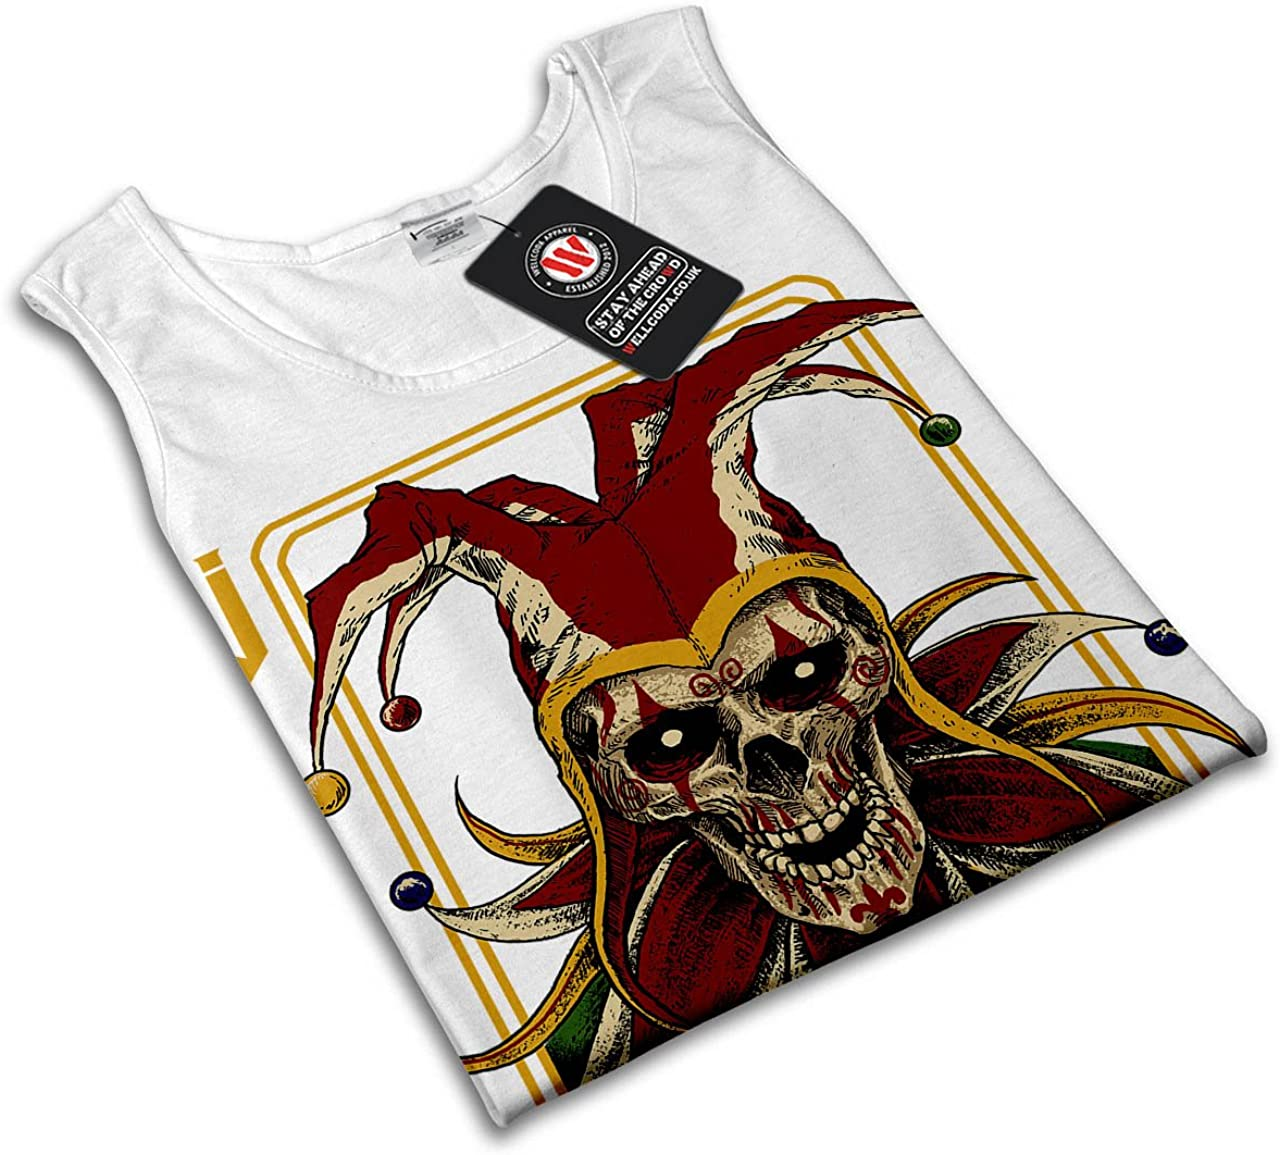 Wellcoda Card Horror Skull Mens Tank Top No Jokes Fit Lifestyle Sports Shirt